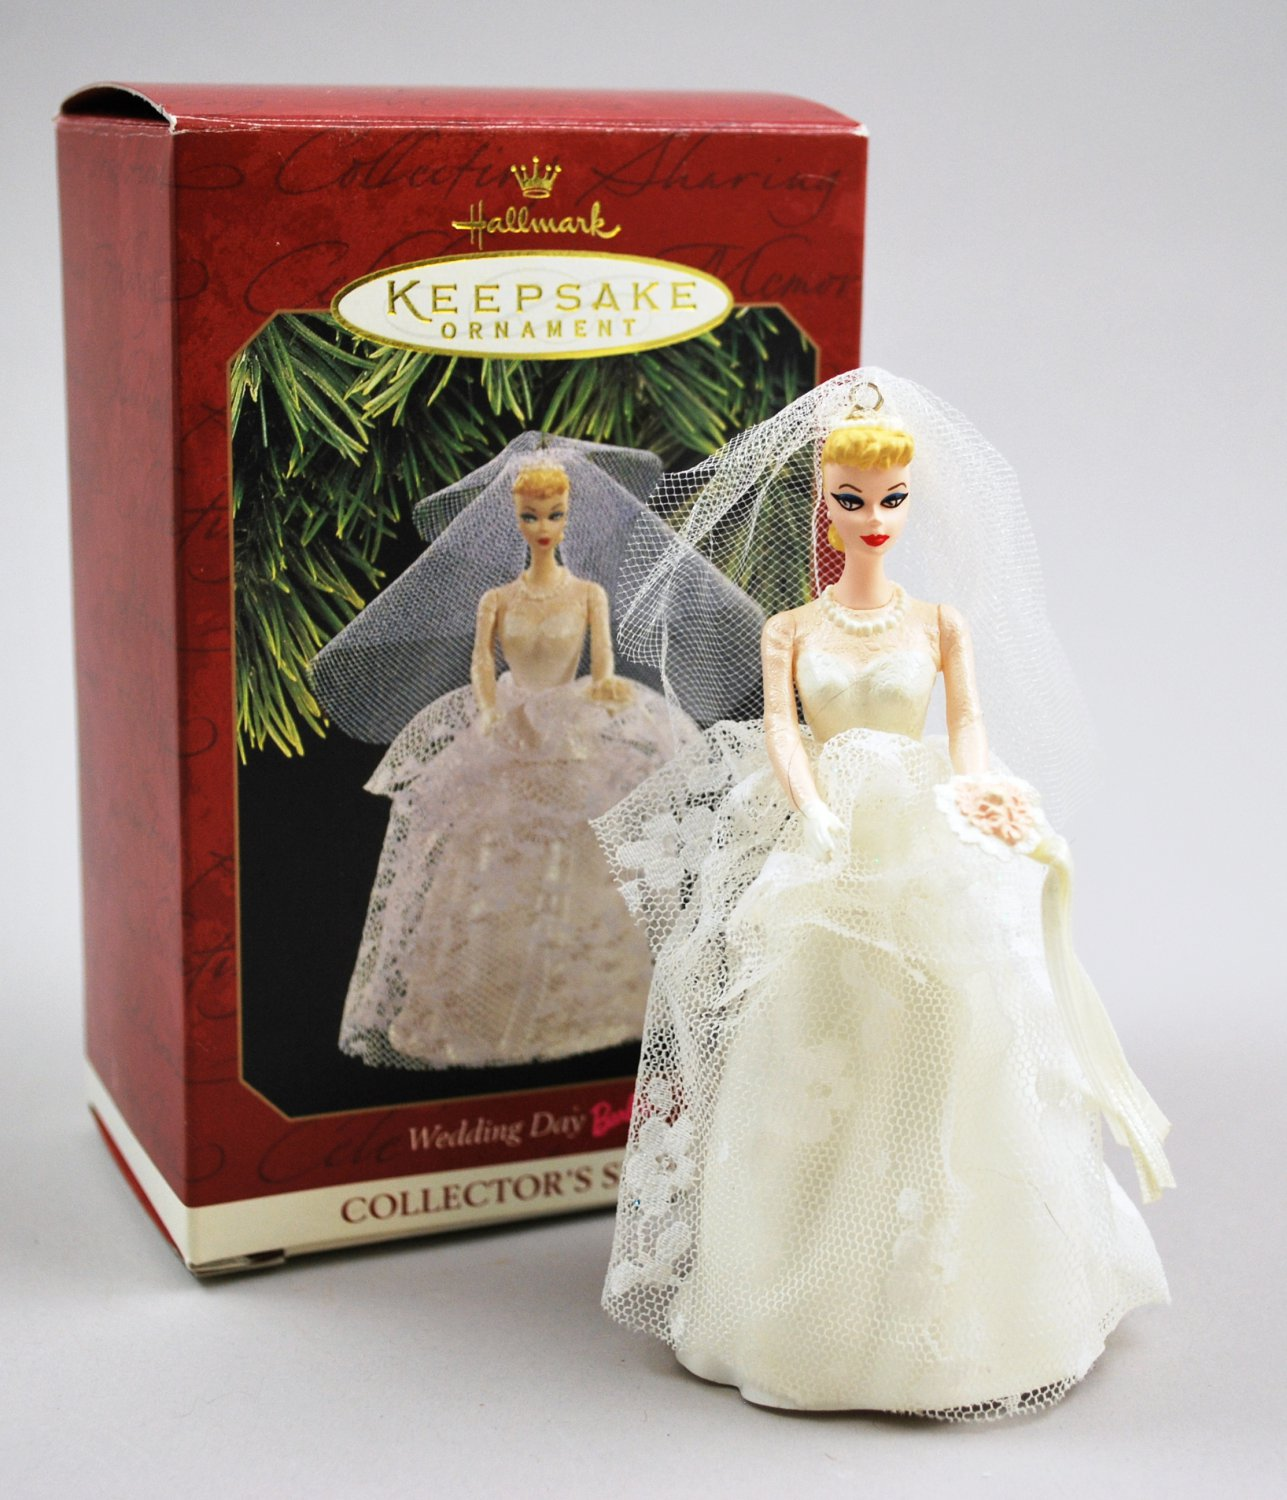 Hallmark 1997 Barbie Wedding Day Keepsake Ornament Fourth Collector's Series